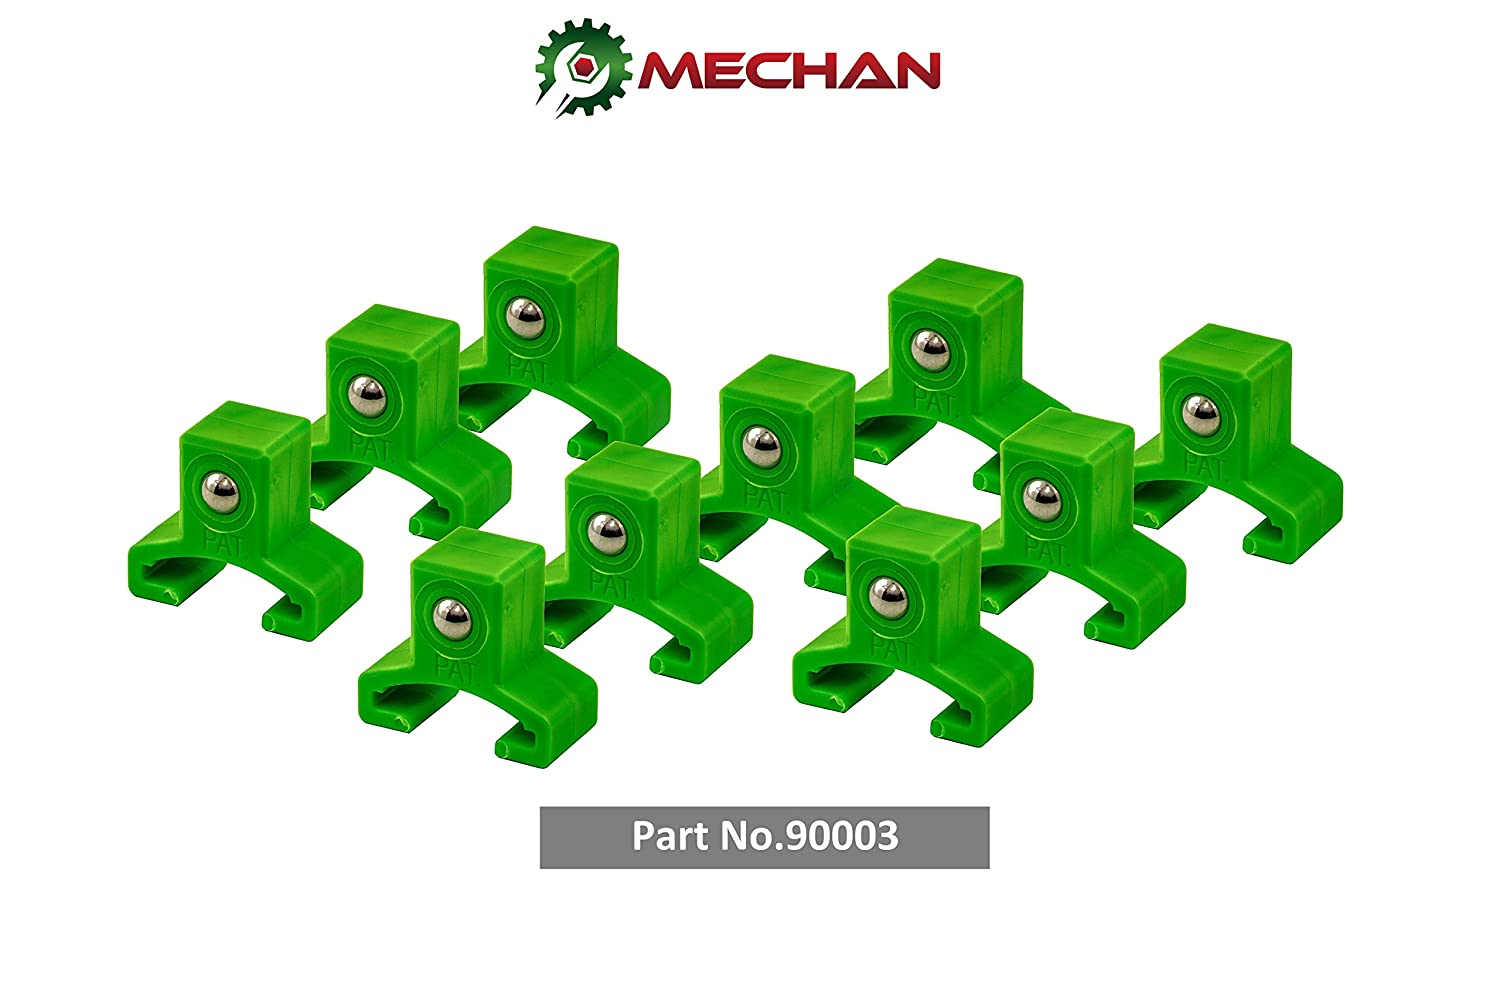 3//8 Drive 10pc. Pack, Green Firm /& Secure Socket Holders - Socket Organizer Holder Rail Replacement Clips Mechan Tools 10pc 3//8 Spring Loaded Ball Bearing Socket Clips Replacement 80001